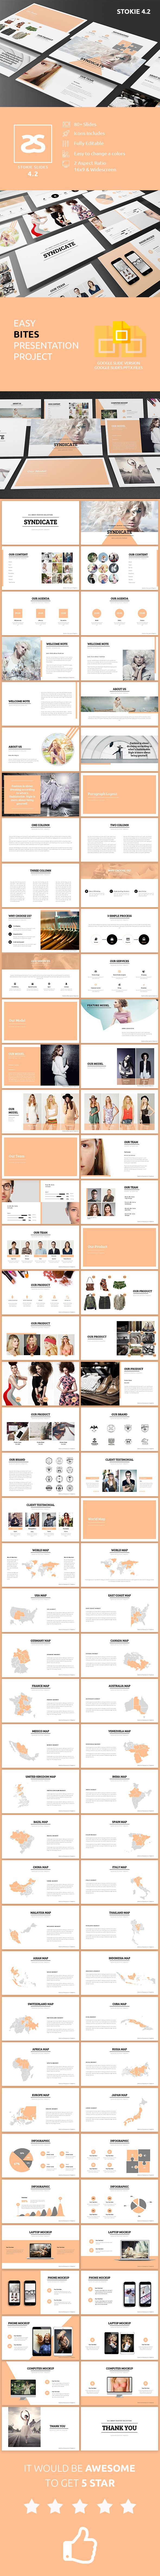 Fashion Google Slide Template 4.2 Fashion Google Slide Template 4.2 is a creative fashion google slide template, come with flat design, clean, classic, minimalist, modern presentation, fit for creative industry such as fashion agency, designer, photographer, website developer, ui/ux, and other industry.  Created to make your business presentation stand out, pain-free and professional look.  What's include?